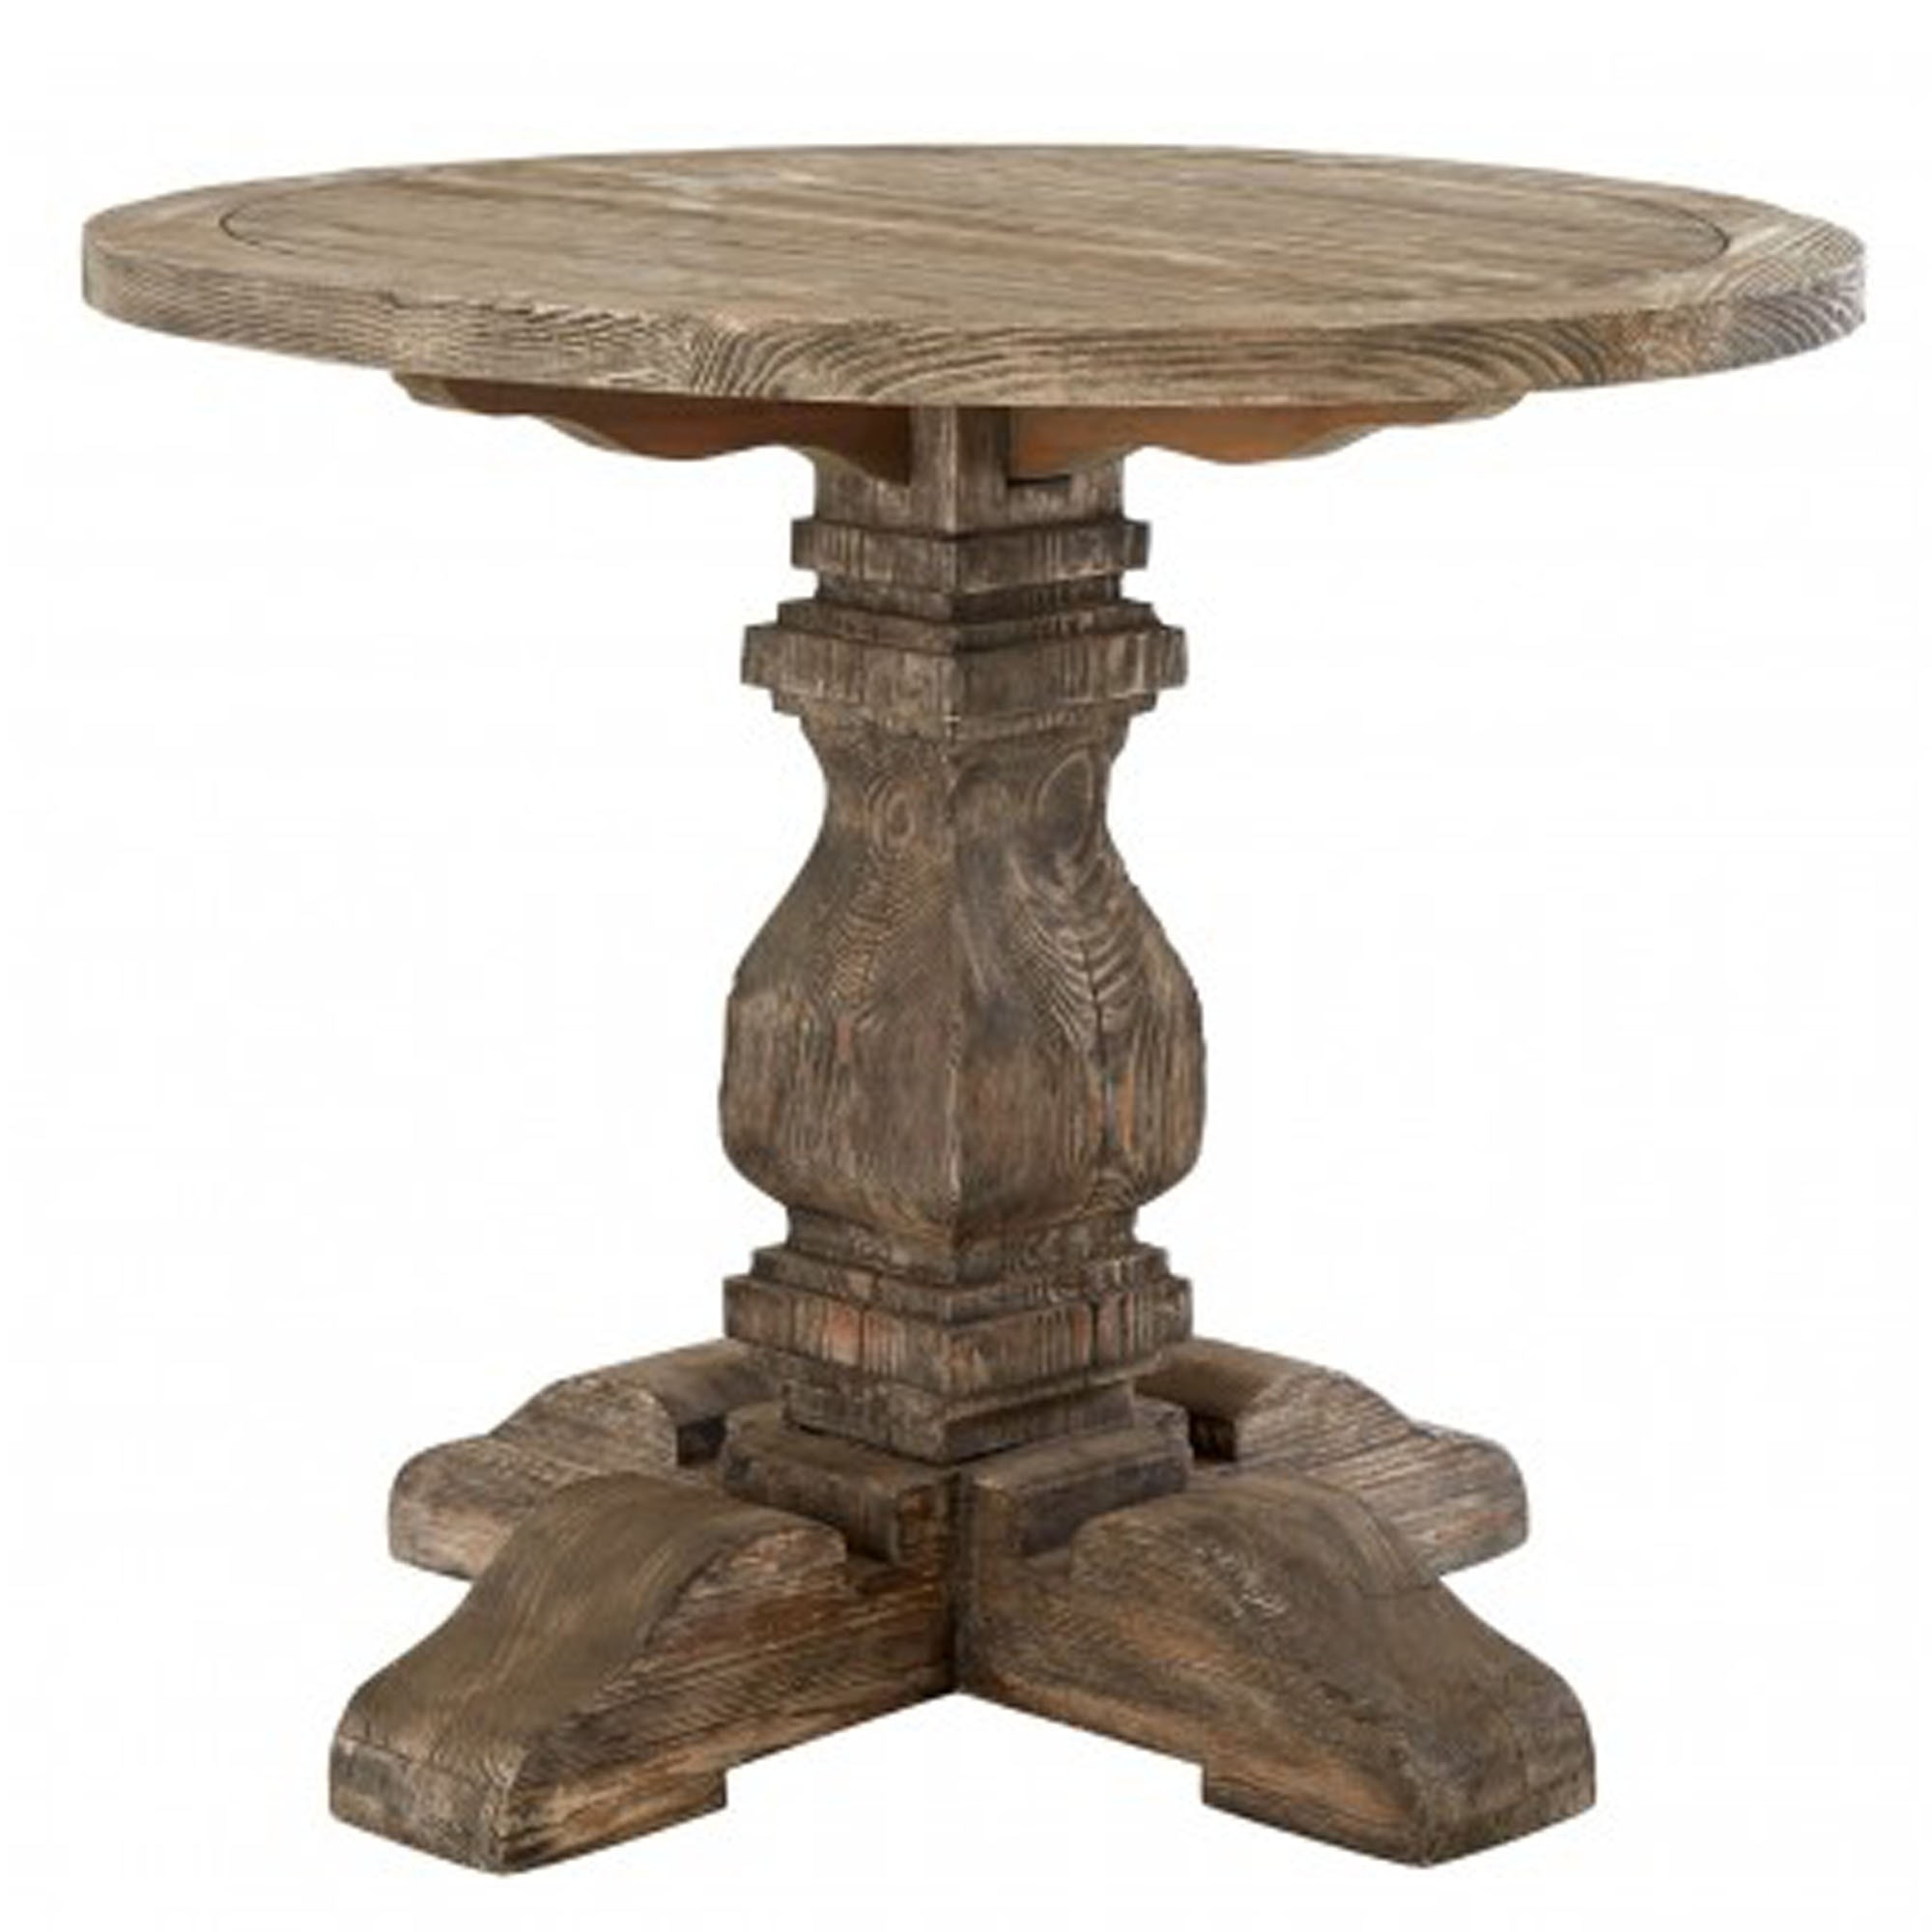 Lovina Round Dining Table With Regard To Most Popular Aztec Round Pedestal Dining Tables (View 12 of 25)